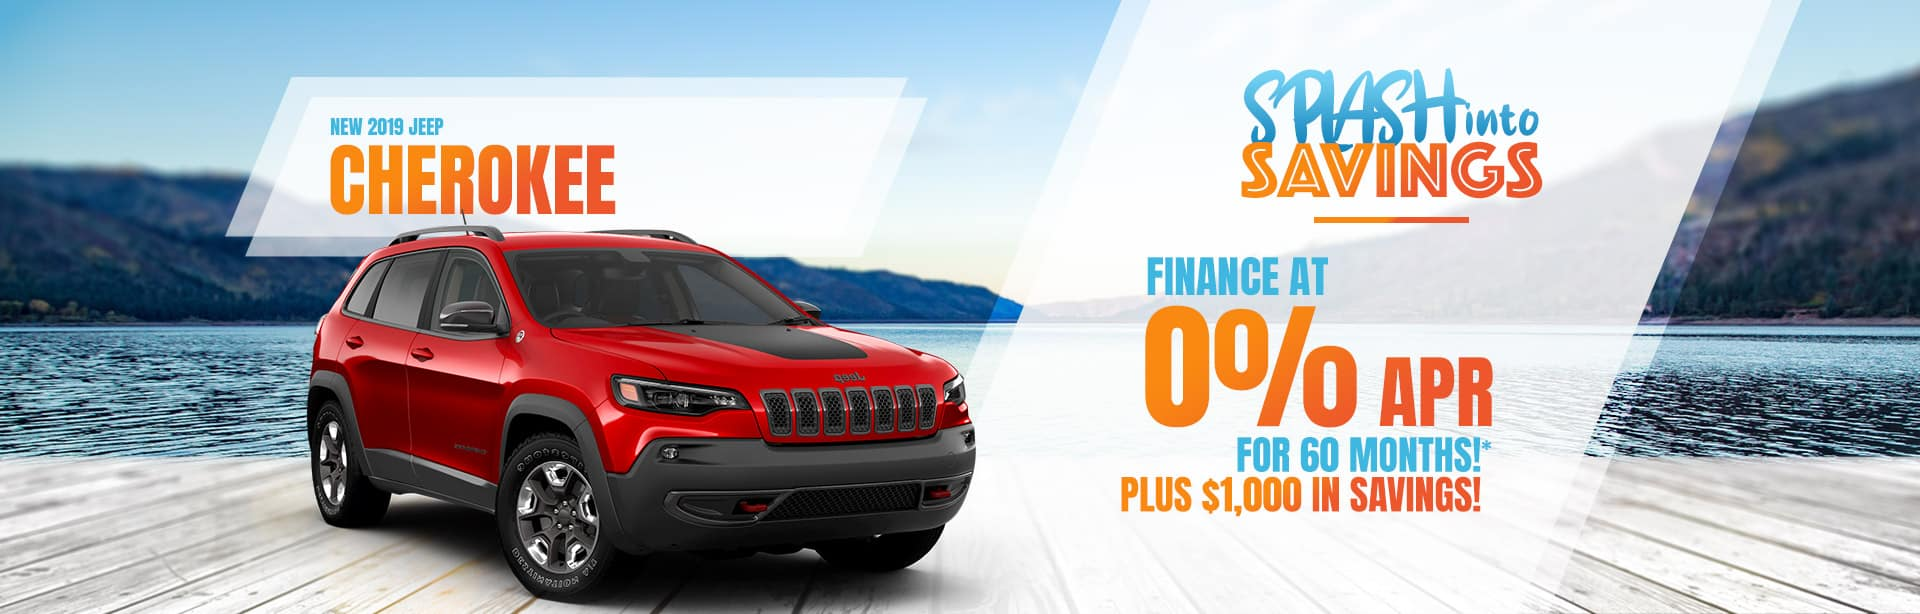 Best Deal on a New Jeep Cherokee in Auburn, Indiana